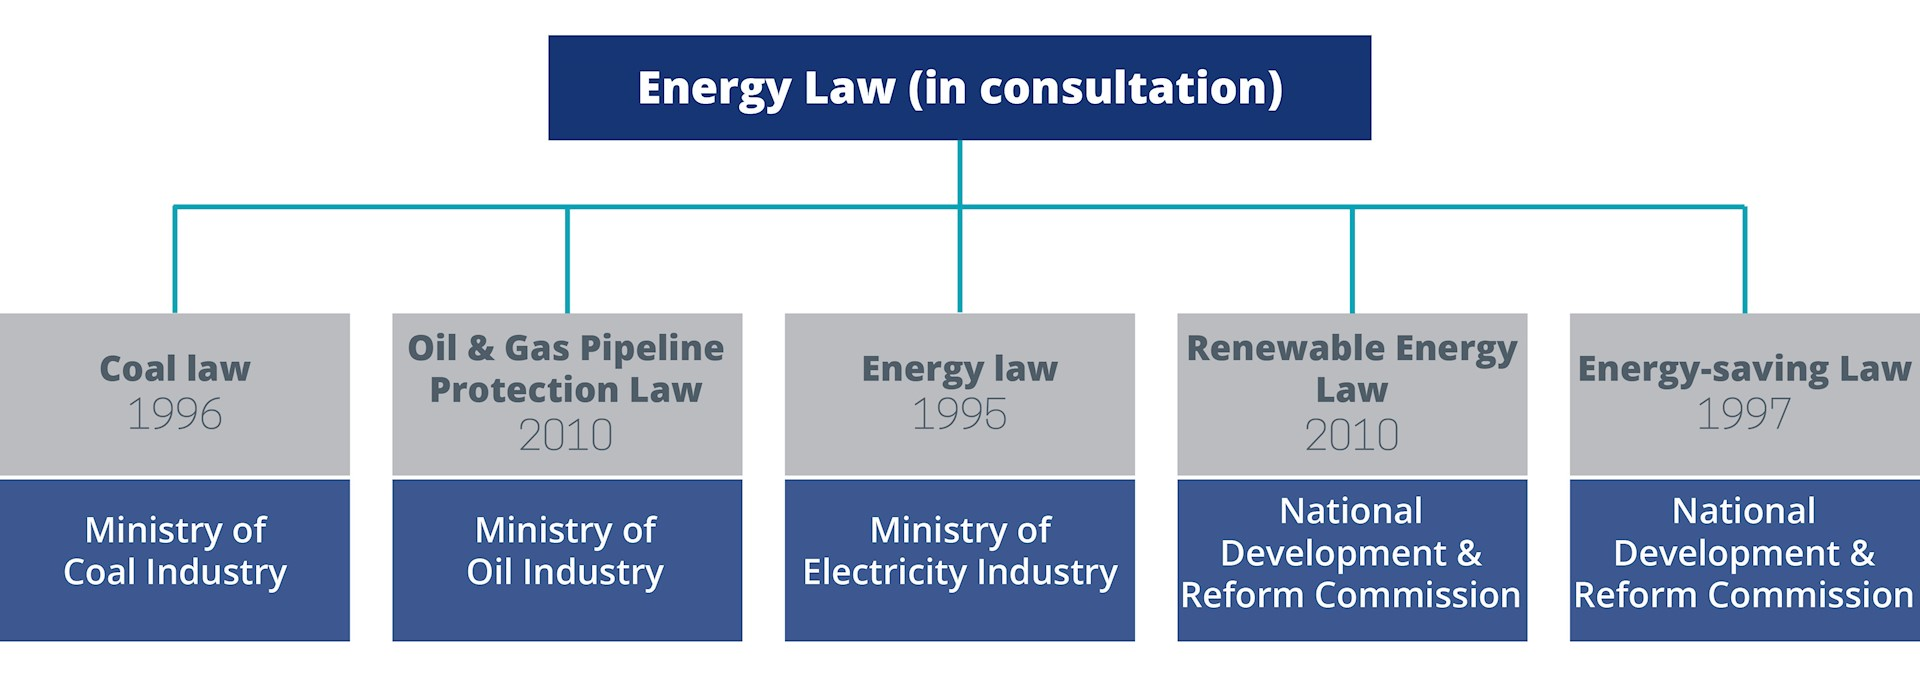 Diagram 1: Chinese energy legislation framework